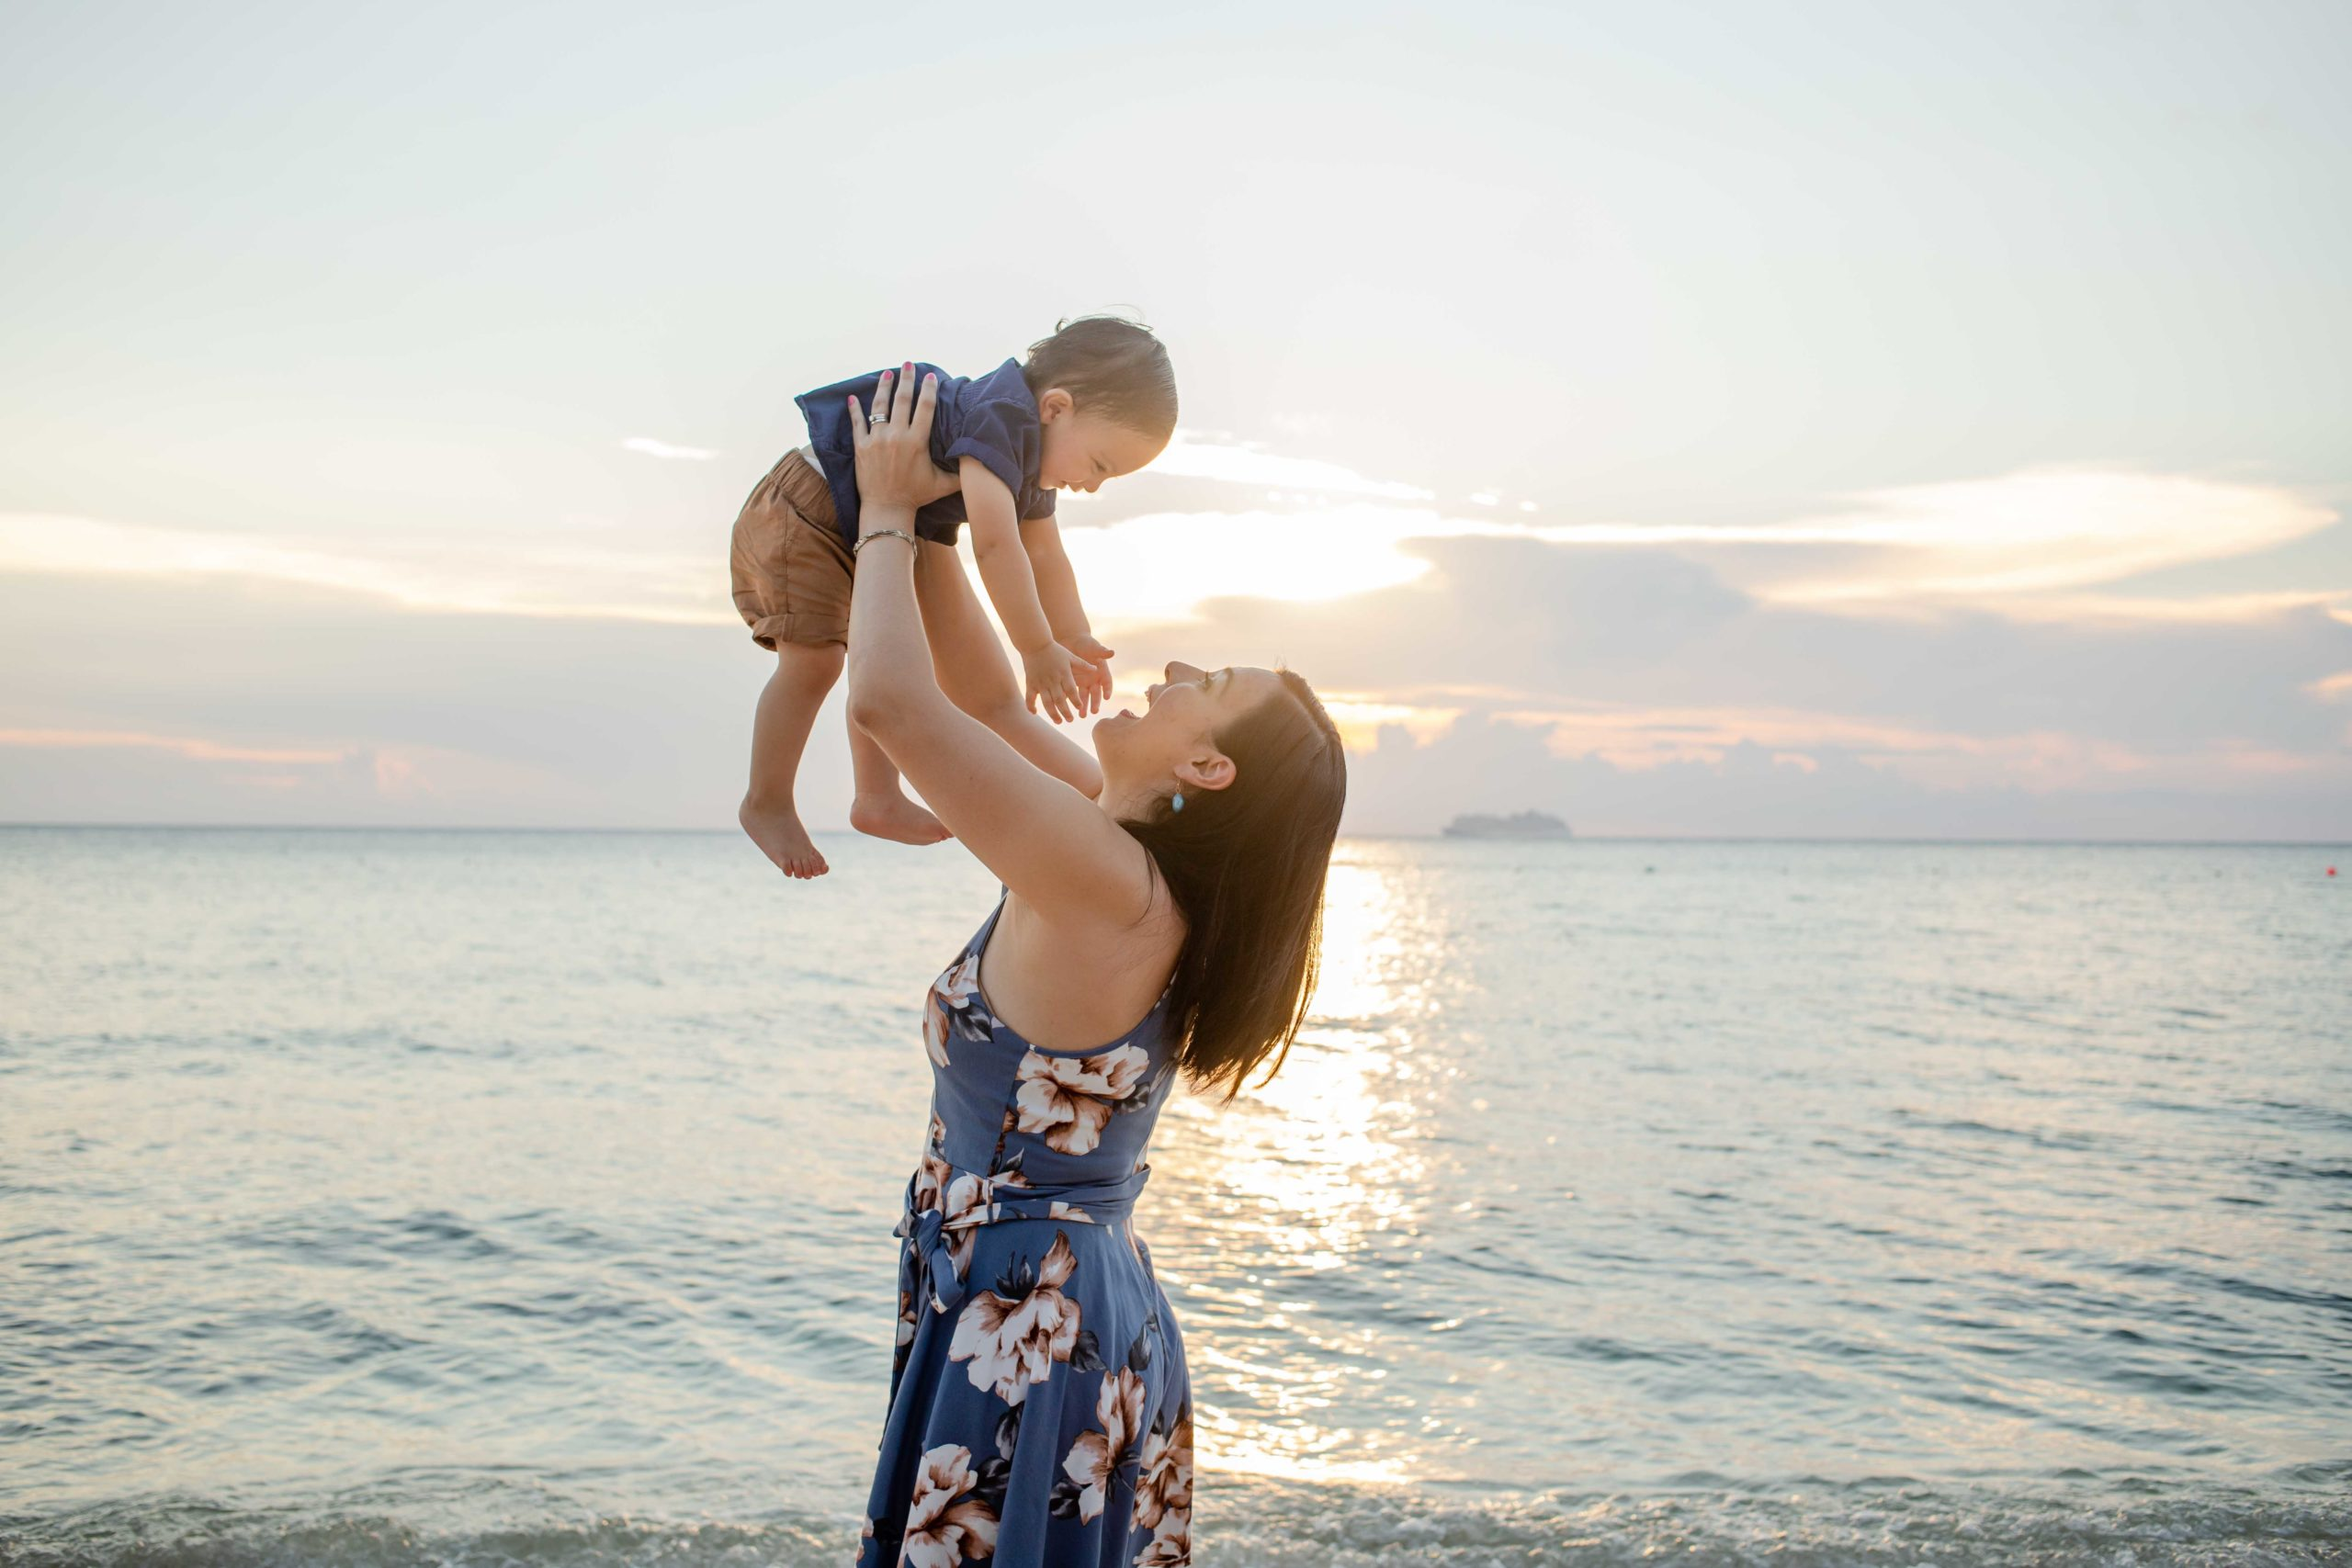 Mother holding her baby in the air with sea in the background. Taken by Hassler Raffoul Escareno.